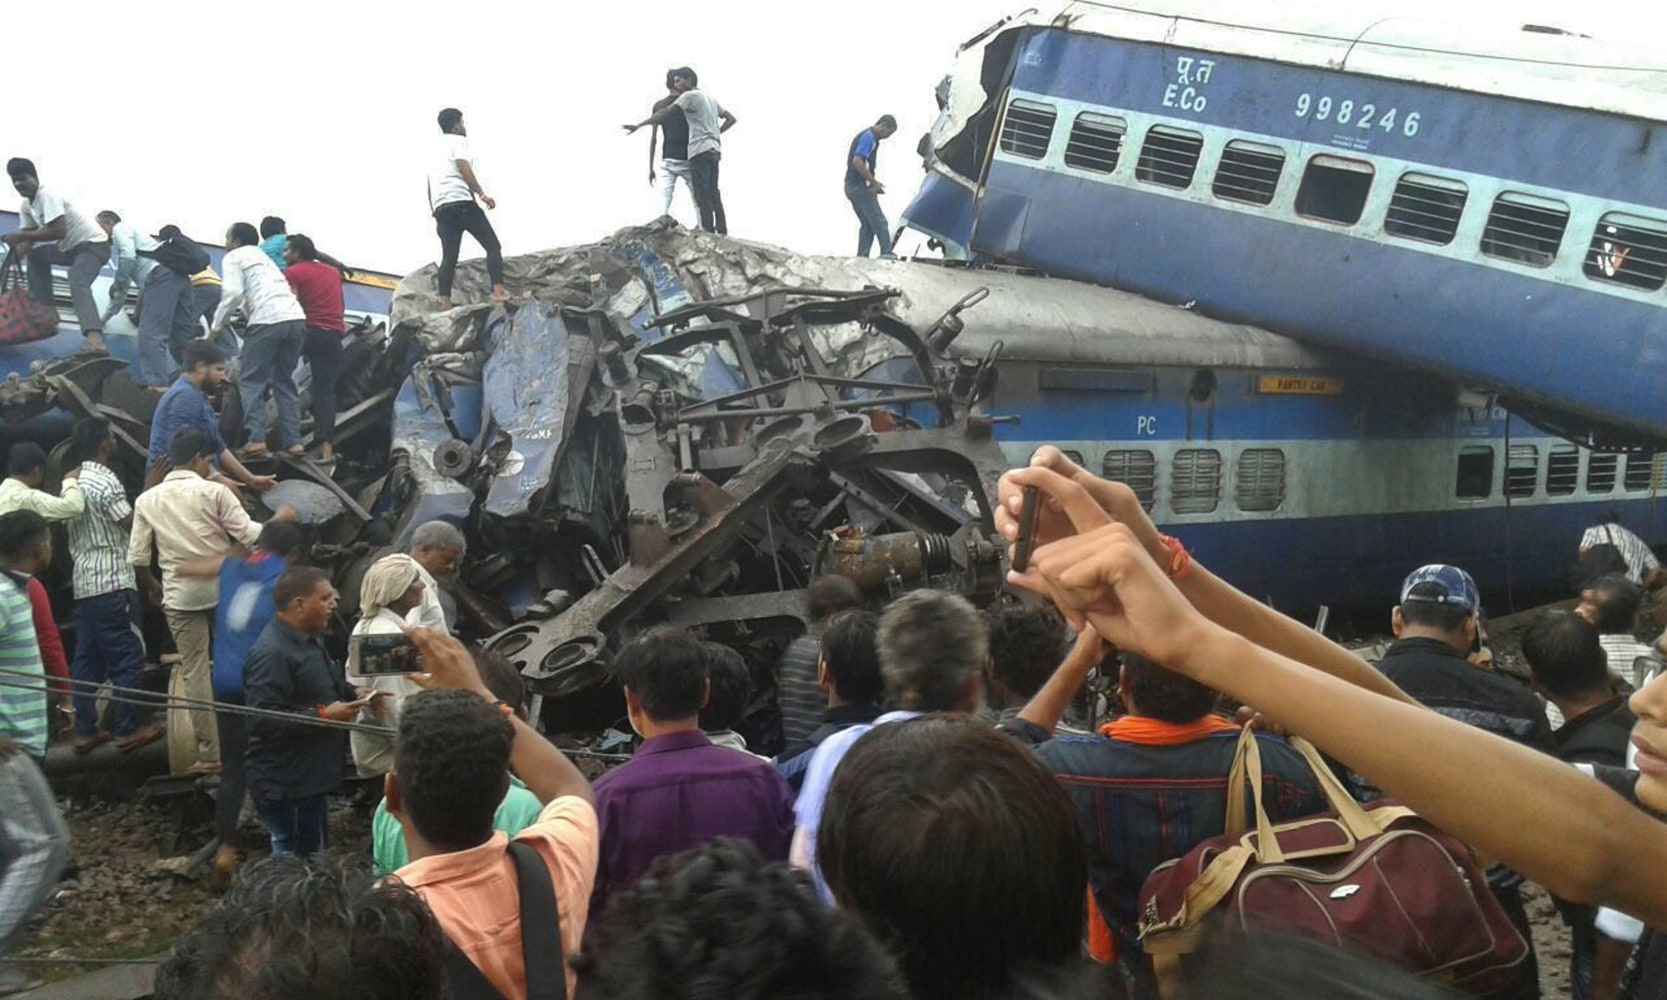 In India a passenger train derailed, there are victims